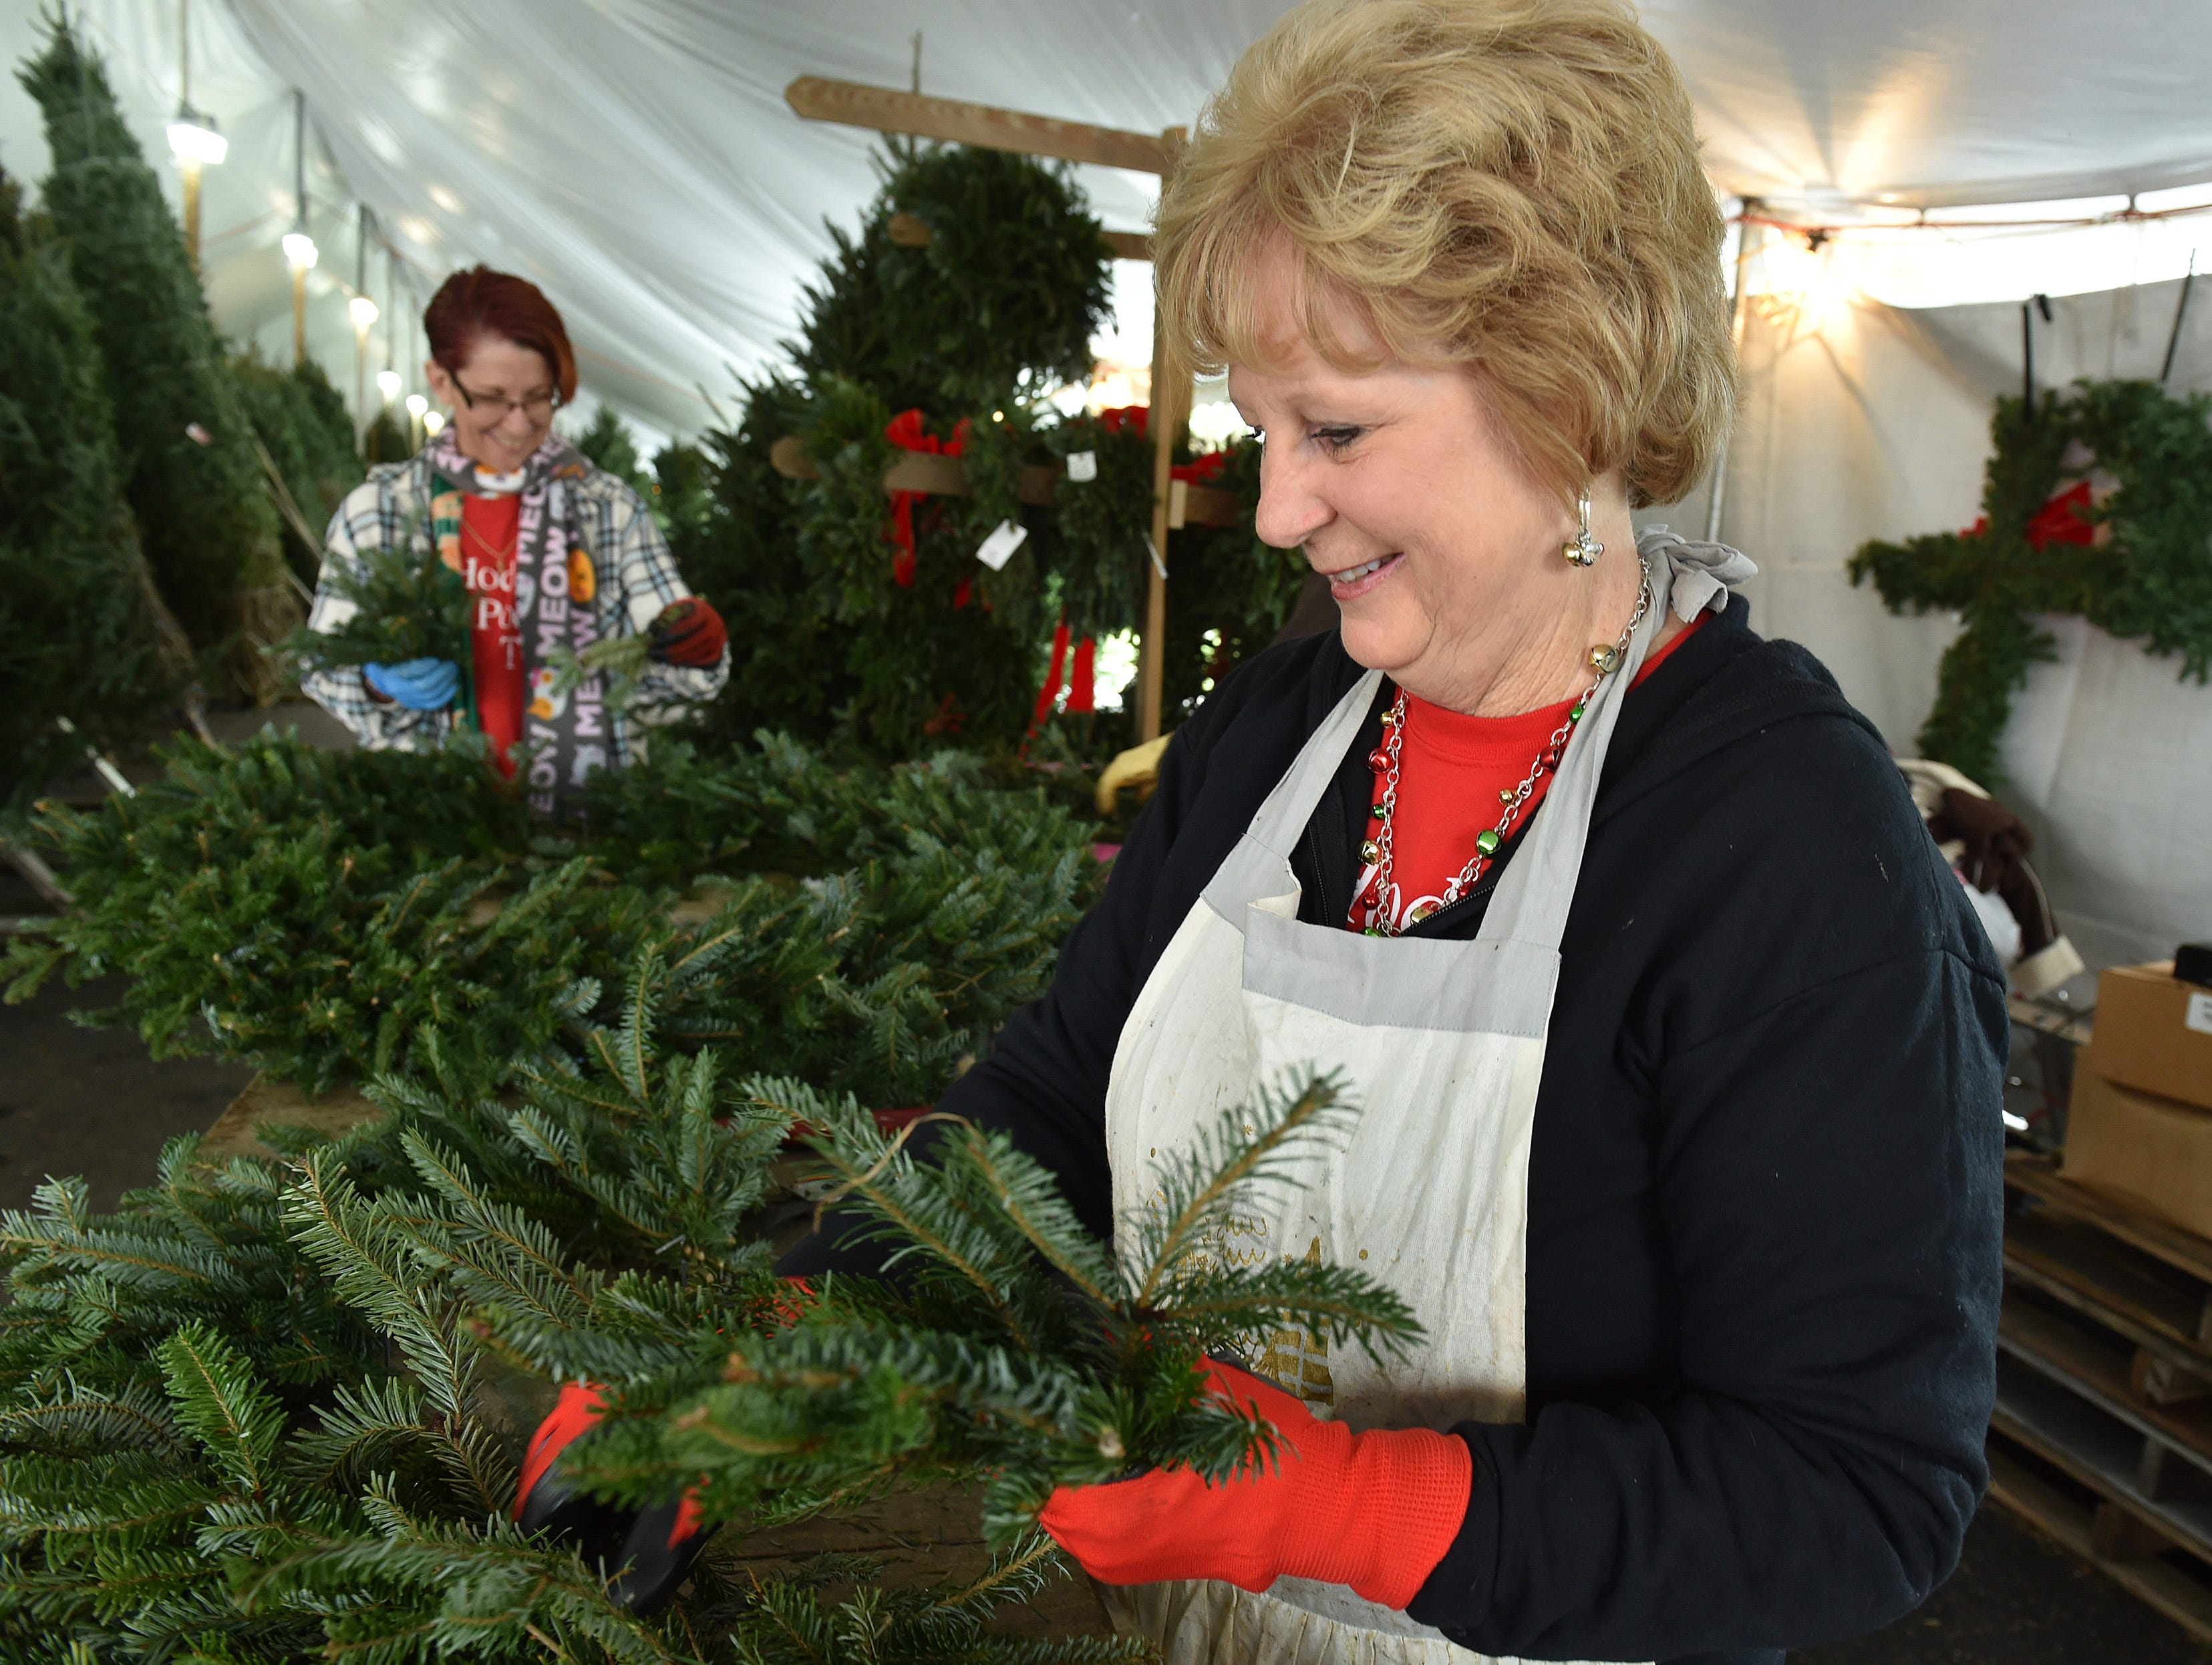 Christmas Tree shopping fun on Tuesday, Nov. 27, 2018, at Hodge Podge Trees in the Kmart Plaza parking lot in the 1600 block of US 1 in Vero Beach.